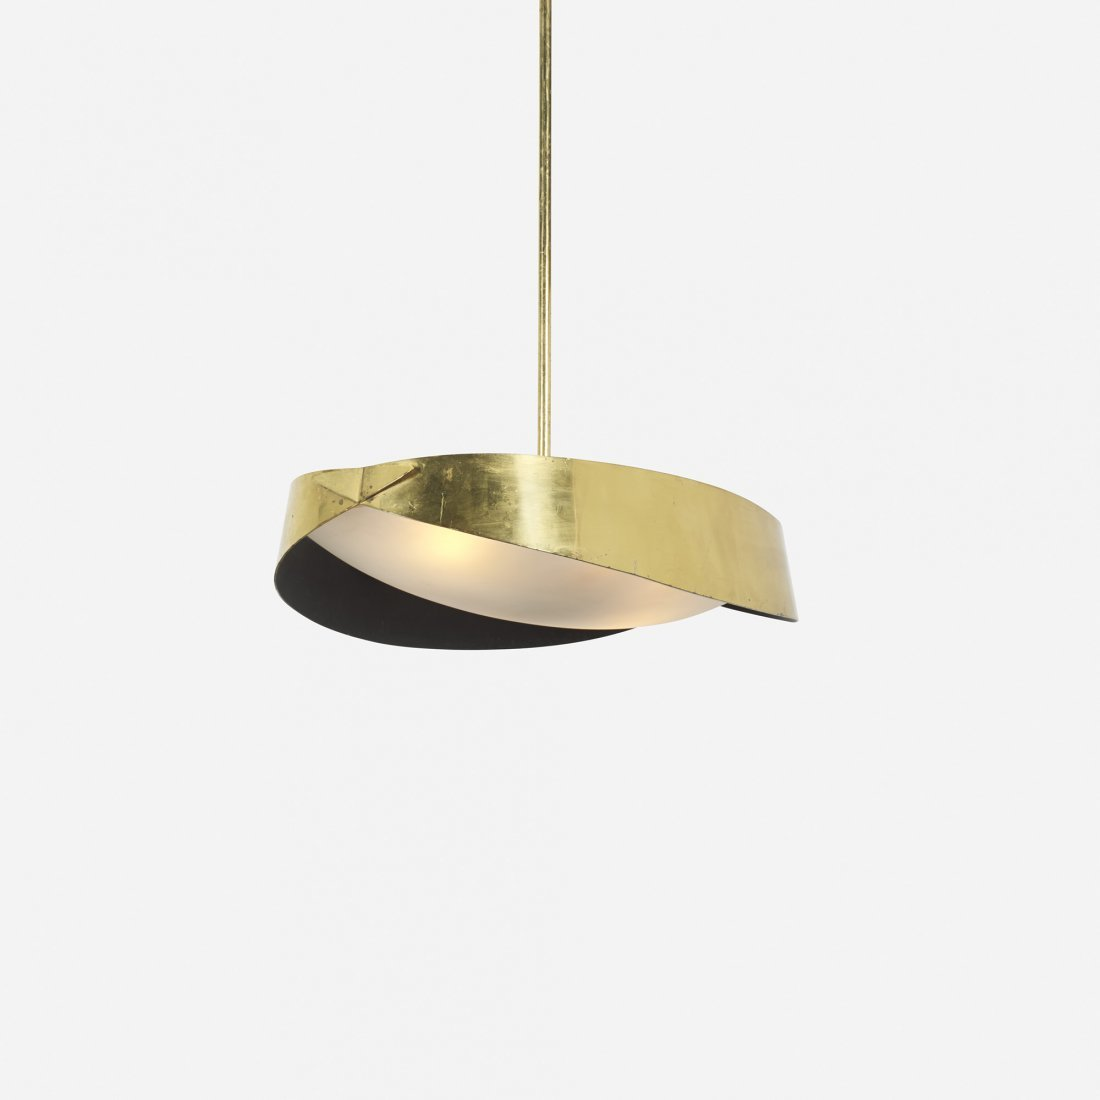 Max Ingrand chandelier